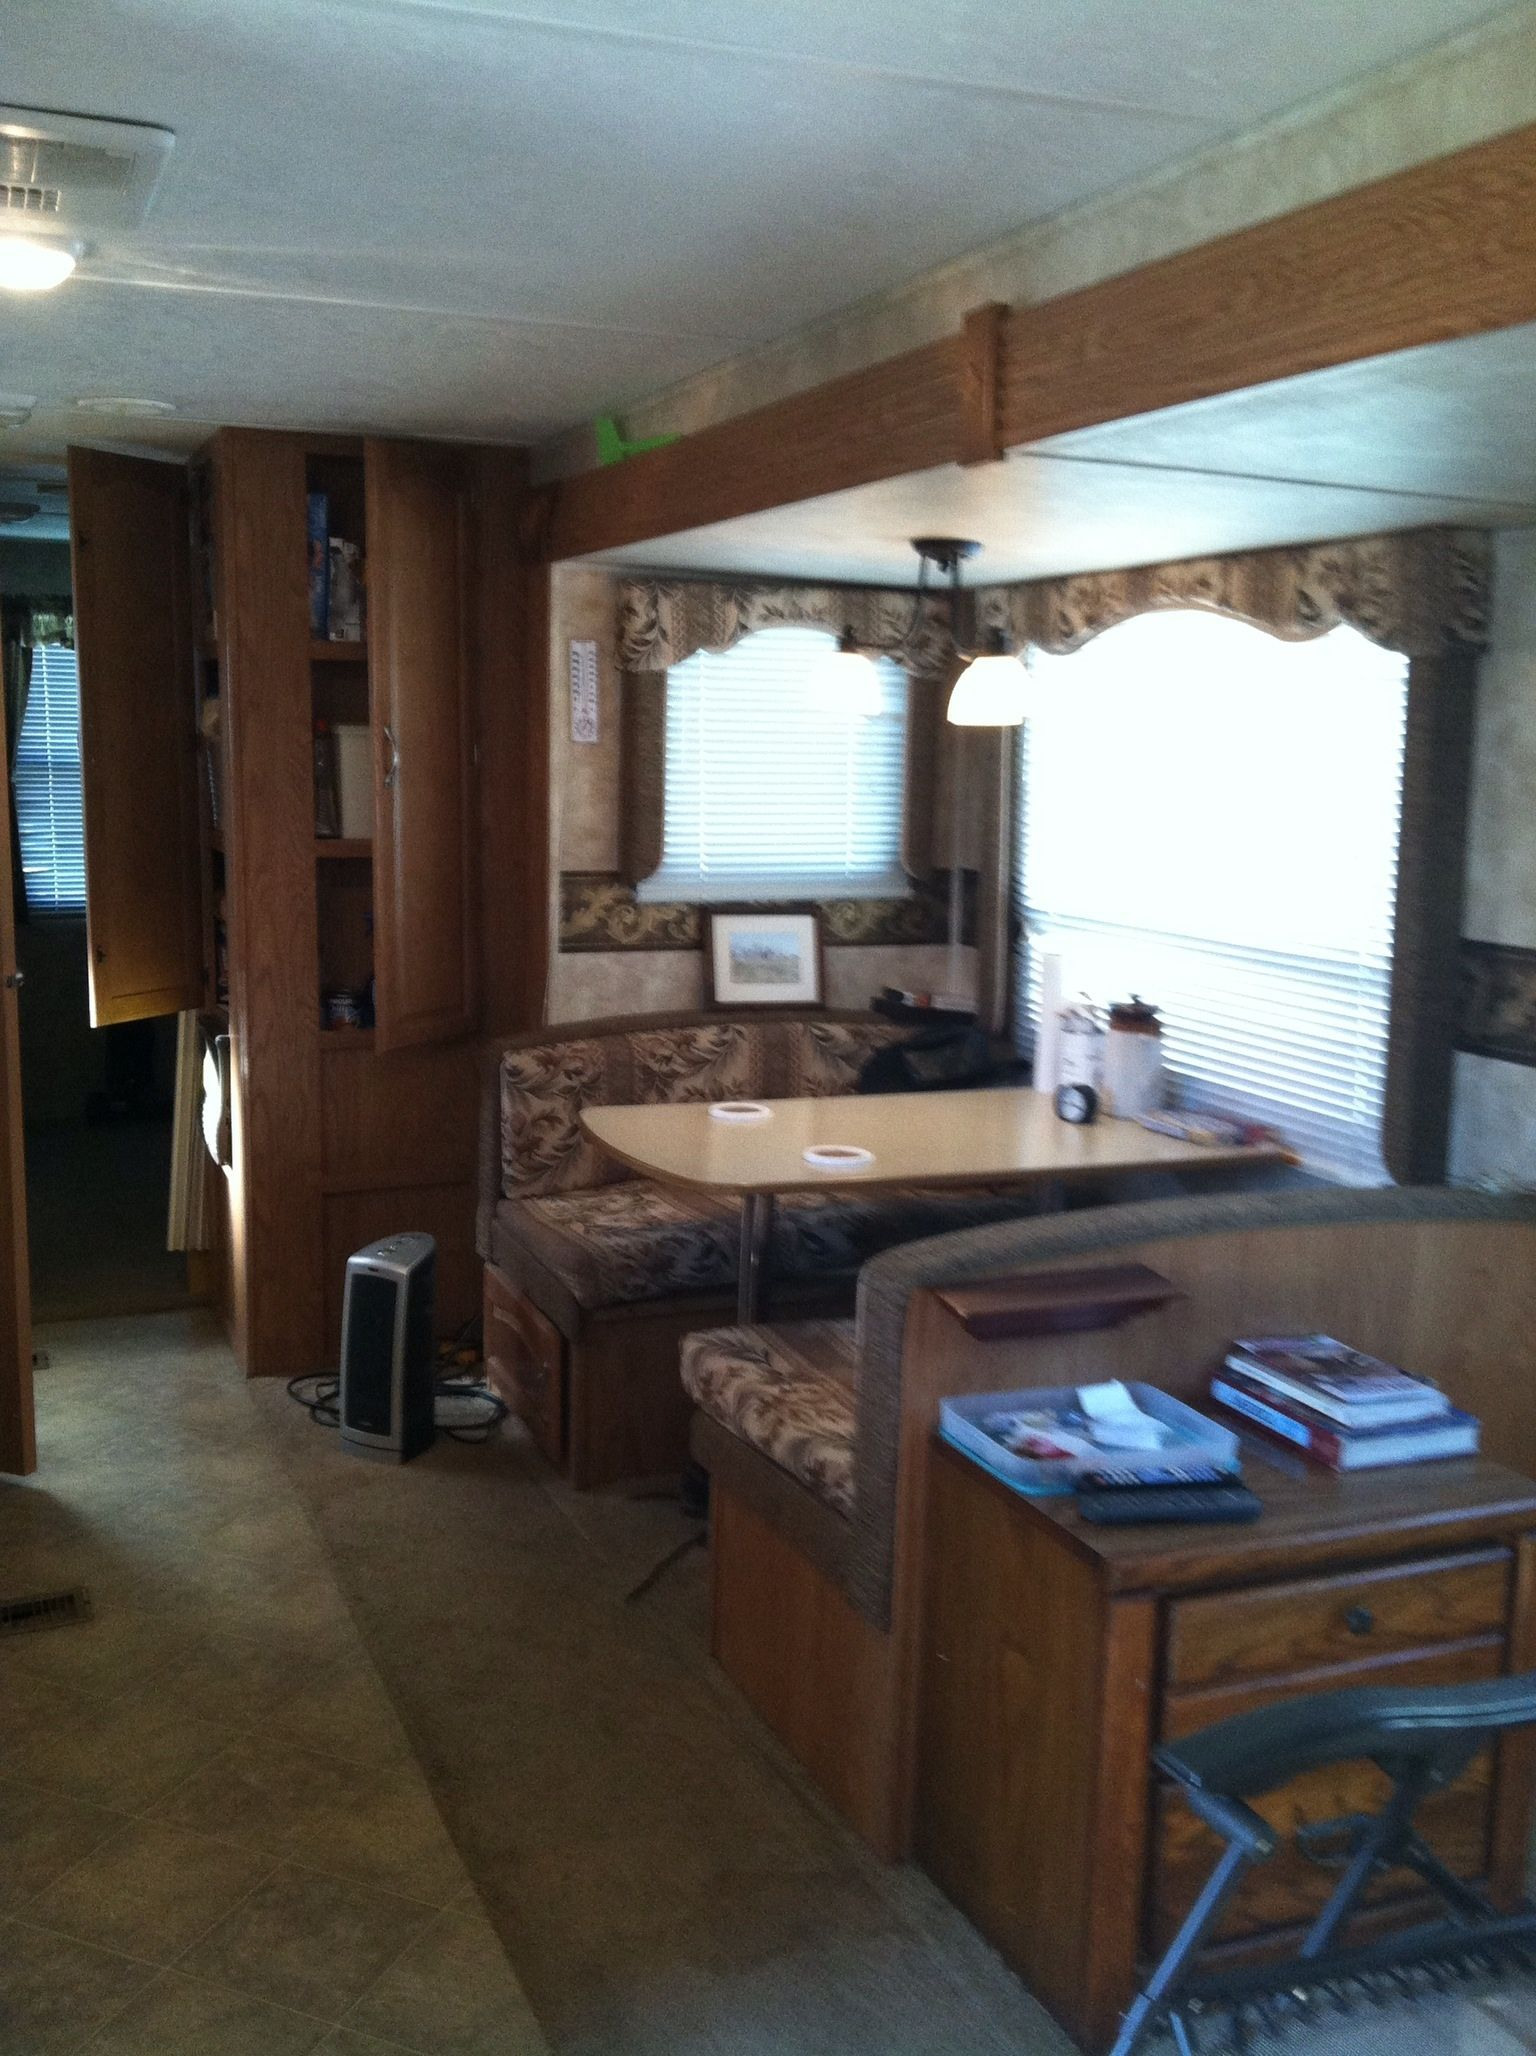 2007 Copper Canyon Sprinter 31ft Pull Behind Camper In Weiners Garage Sale Weiner AR For 31 Ft 2 Slides With